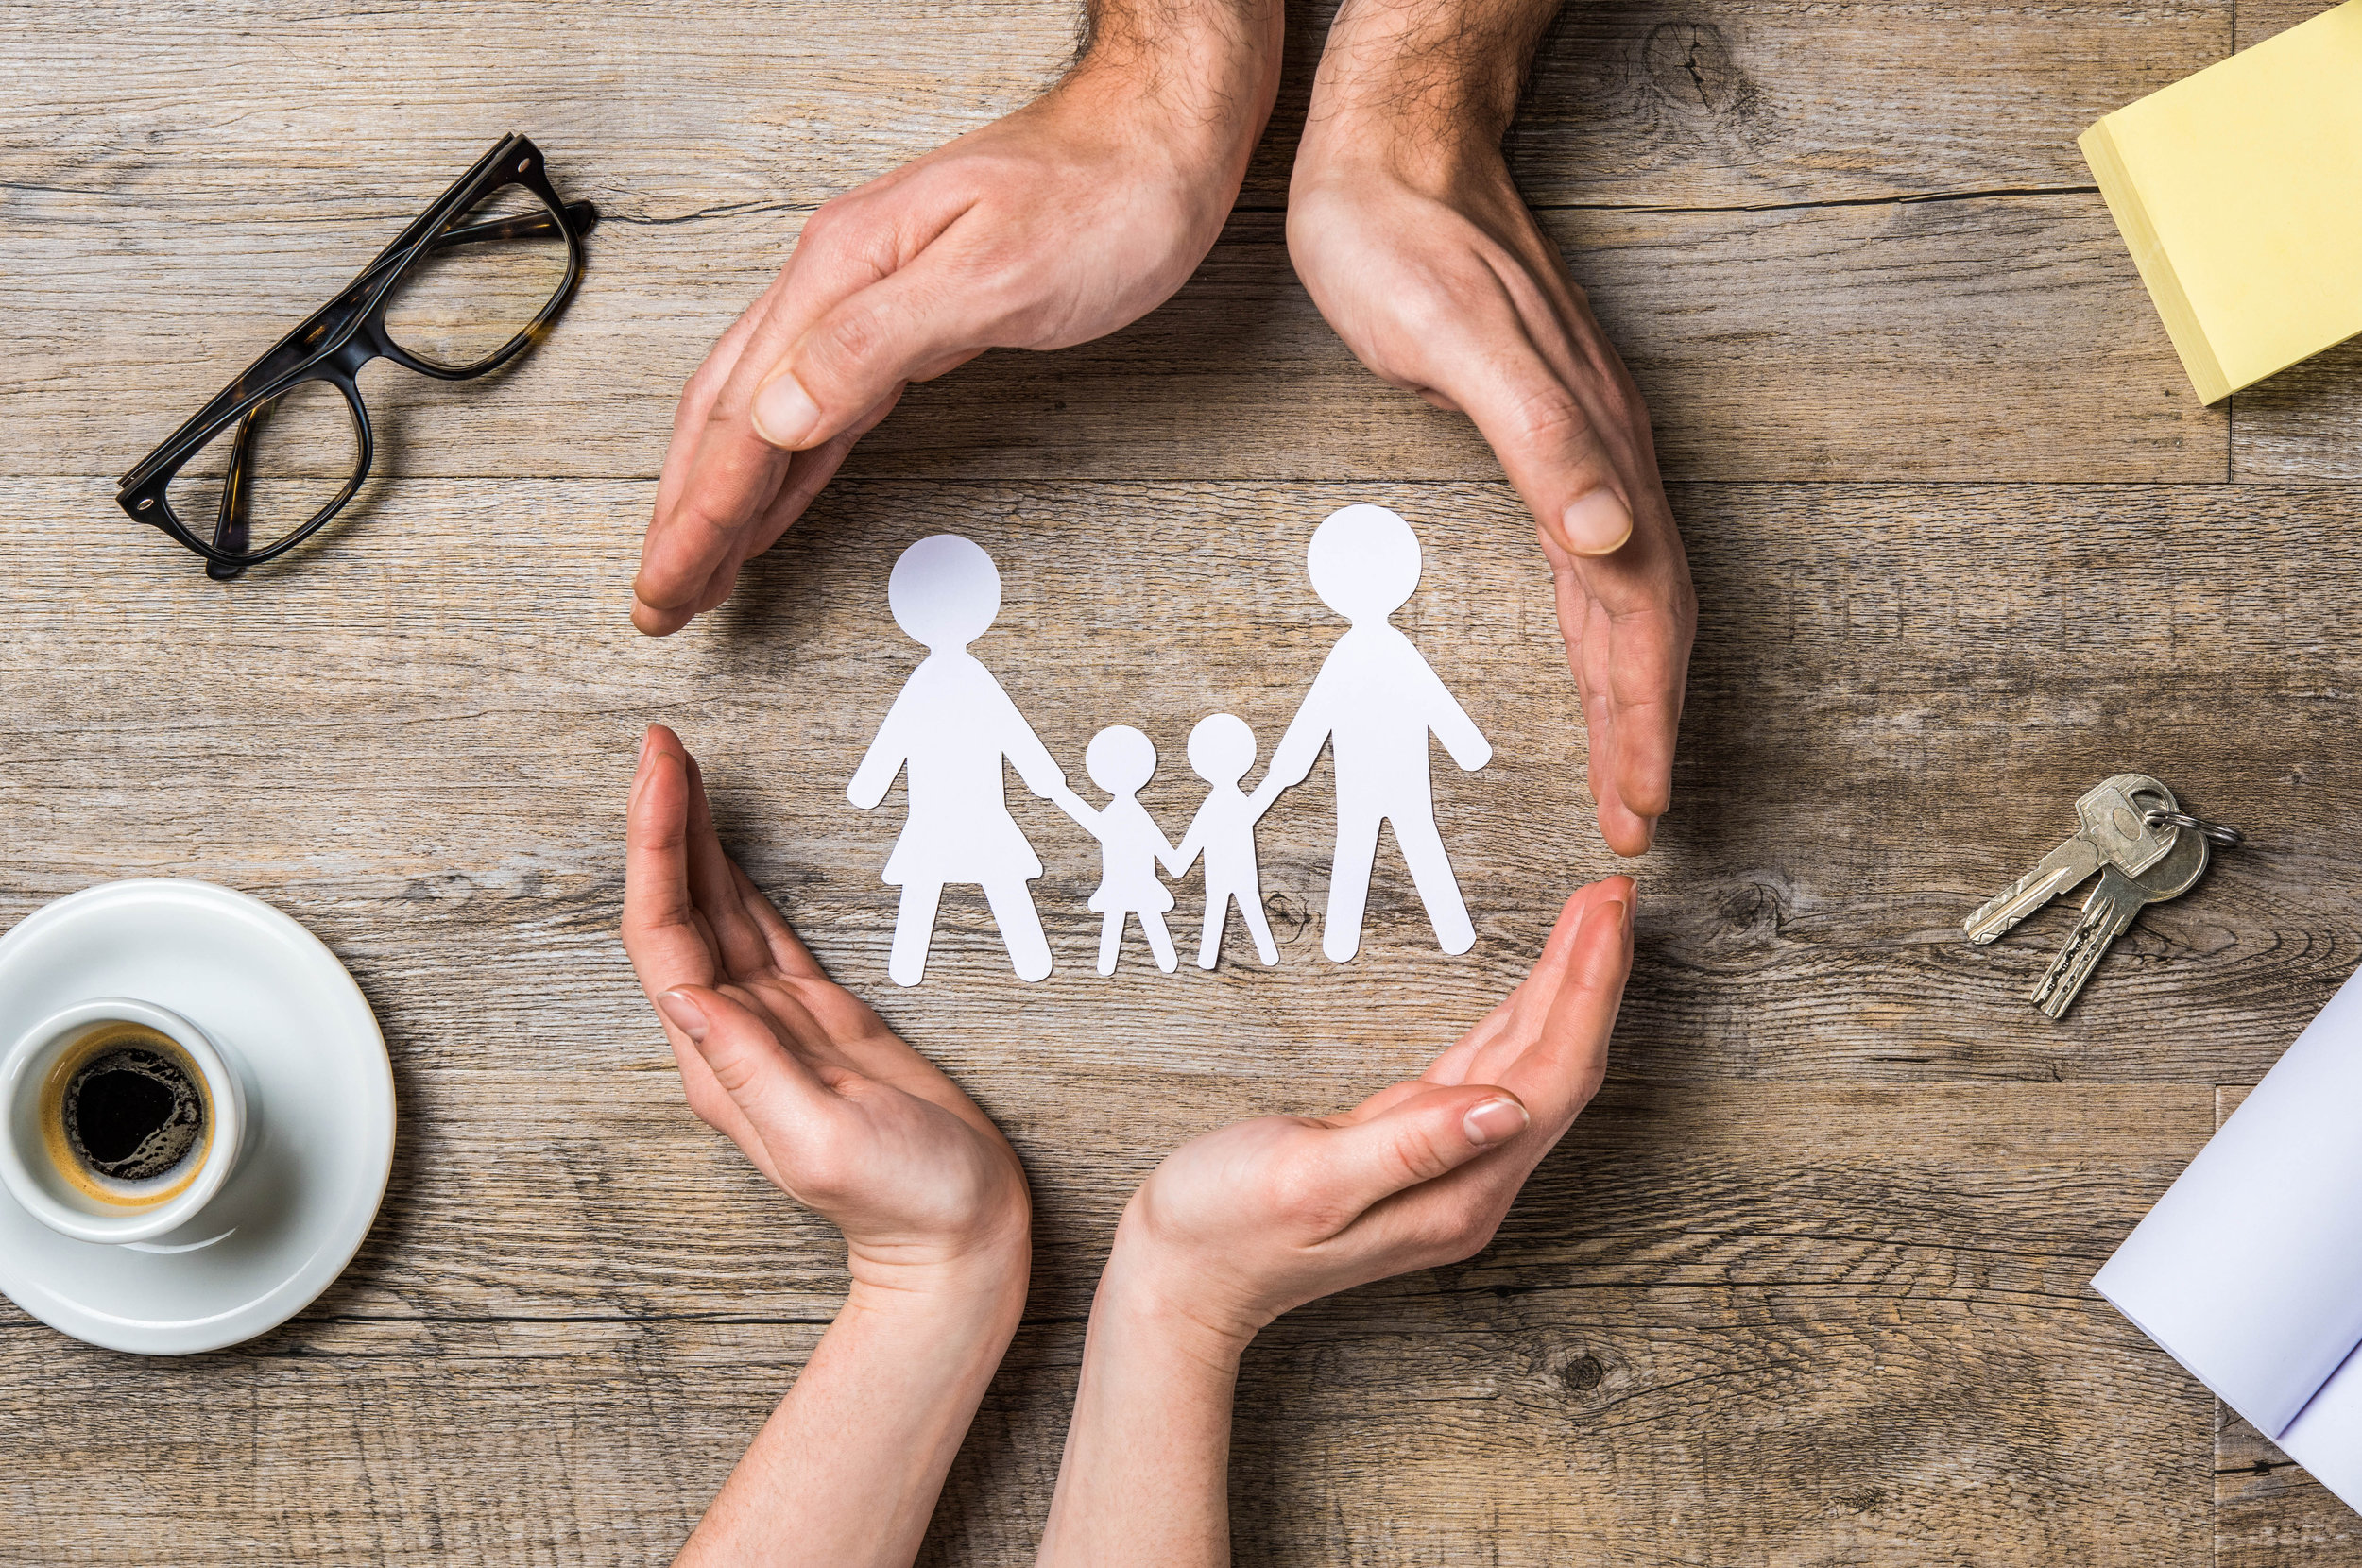 Universal life insurance - Universal life is a form of permanent life insurance characterized by its flexible premiums, face amounts and unbundled pricing structure. Universal life can build cash value, which earns an interest rate that may adjust periodically, but is usually guaranteed not to fall below a certain percentage.